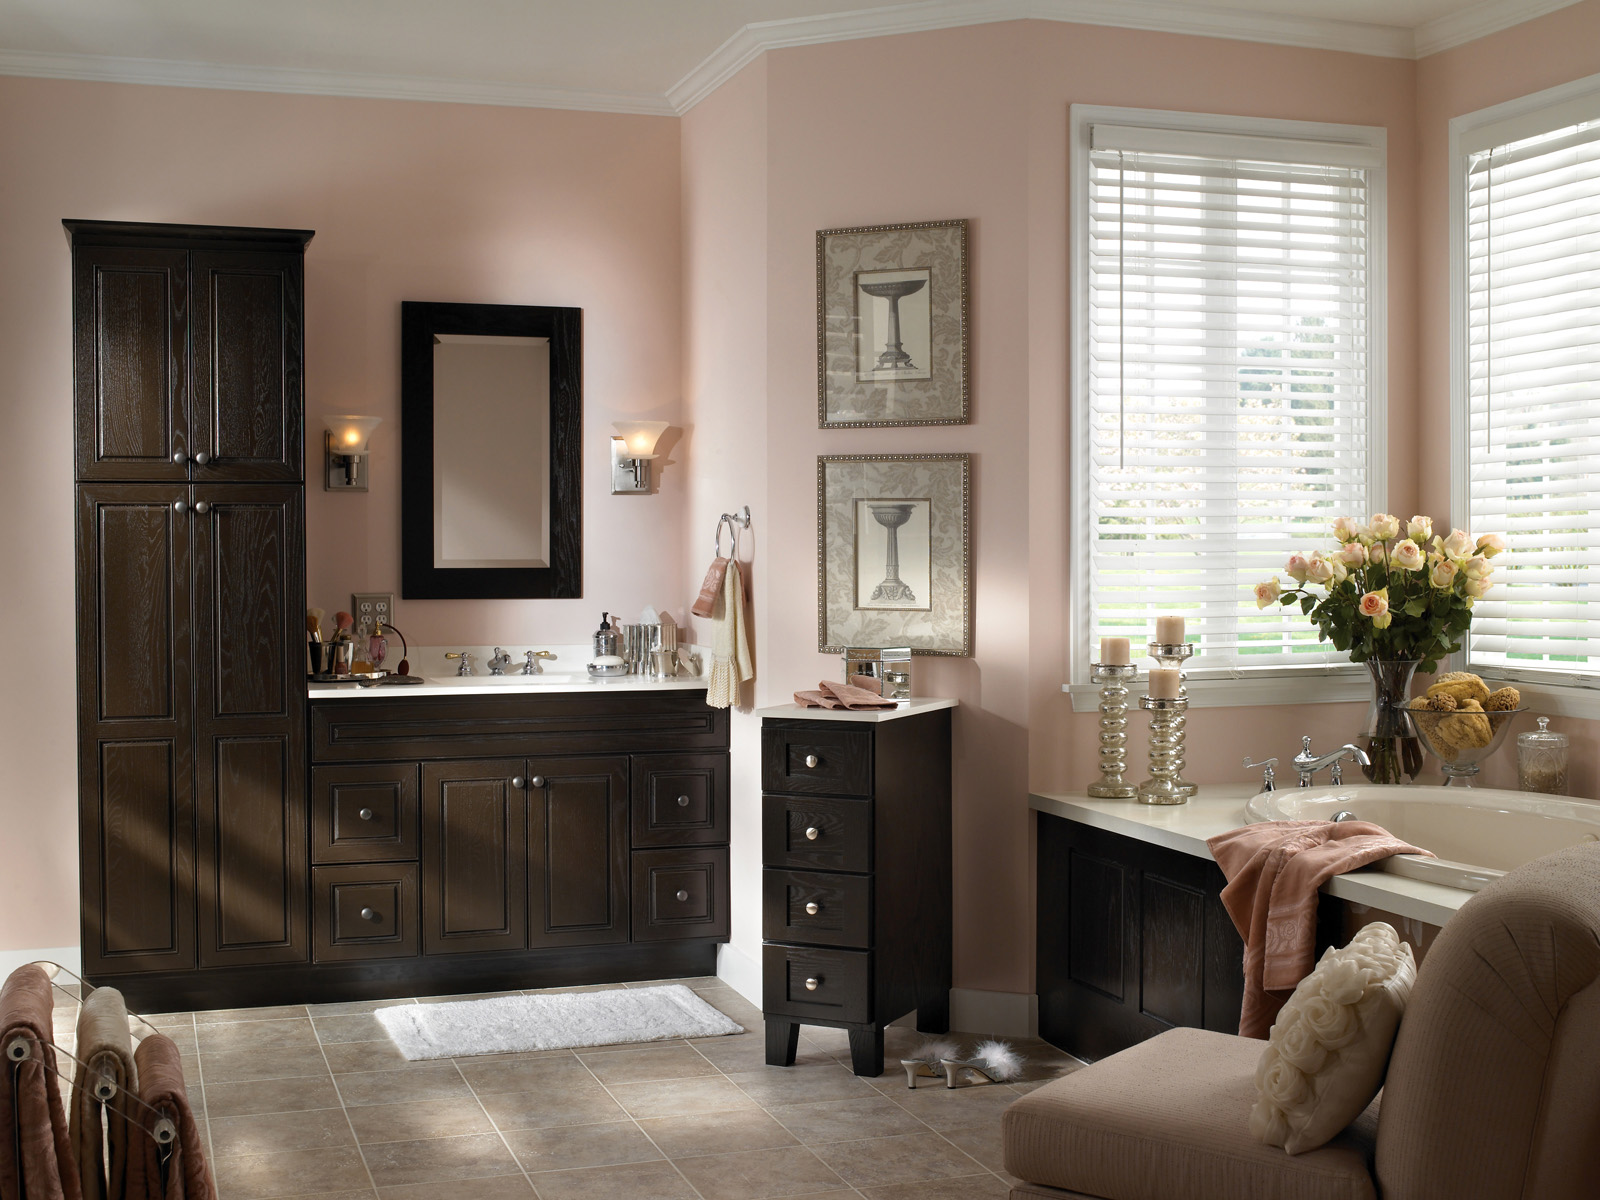 Bathroom Kitchen Cabinets Bathroom Countertops Adding Elegance And Style To Your